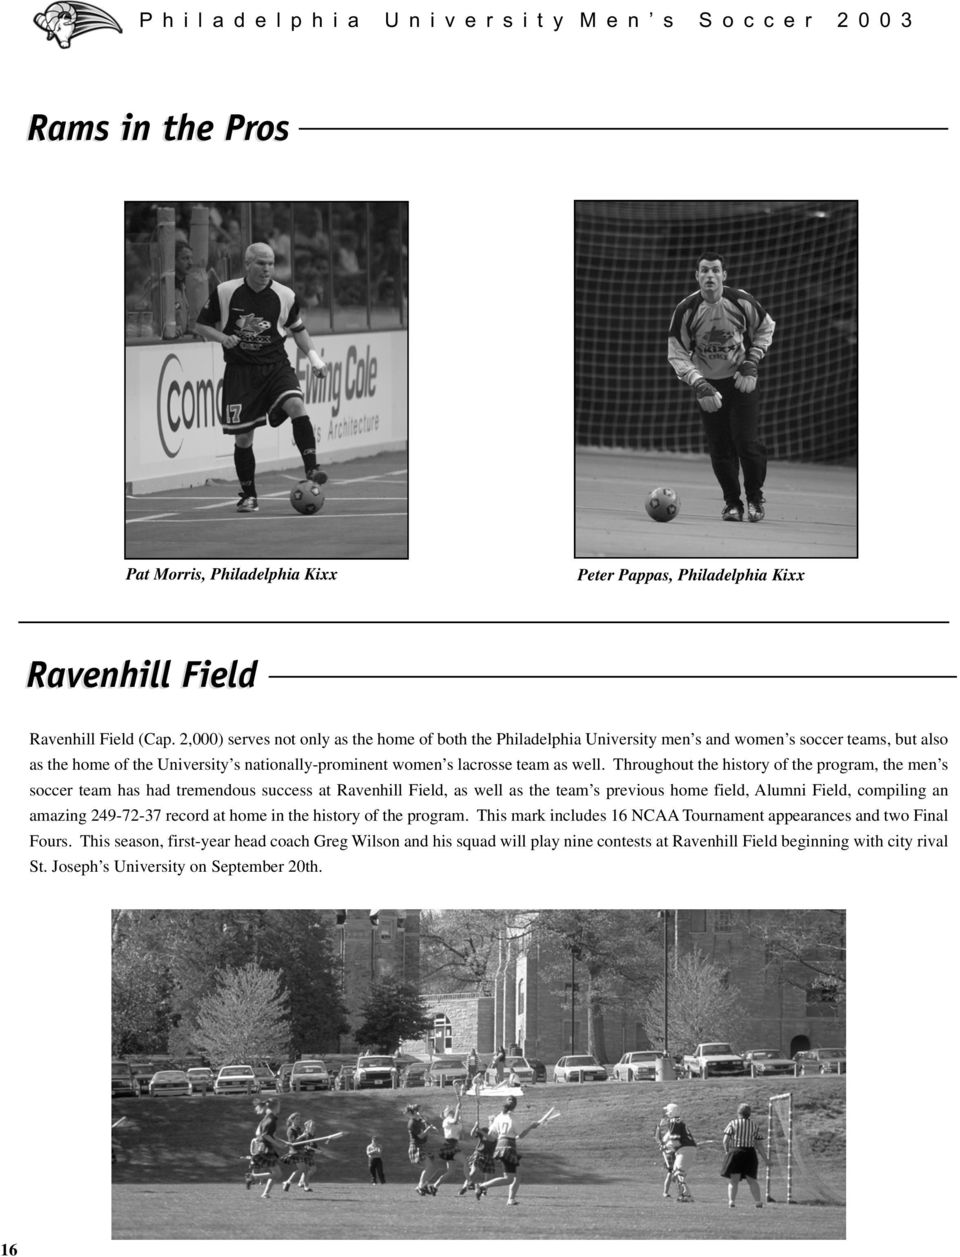 Throughout the history of the program, the men s soccer team has had tremendous success at Ravenhill Field, as well as the team s previous home field, Alumni Field, compiling an amazing 249-72-37